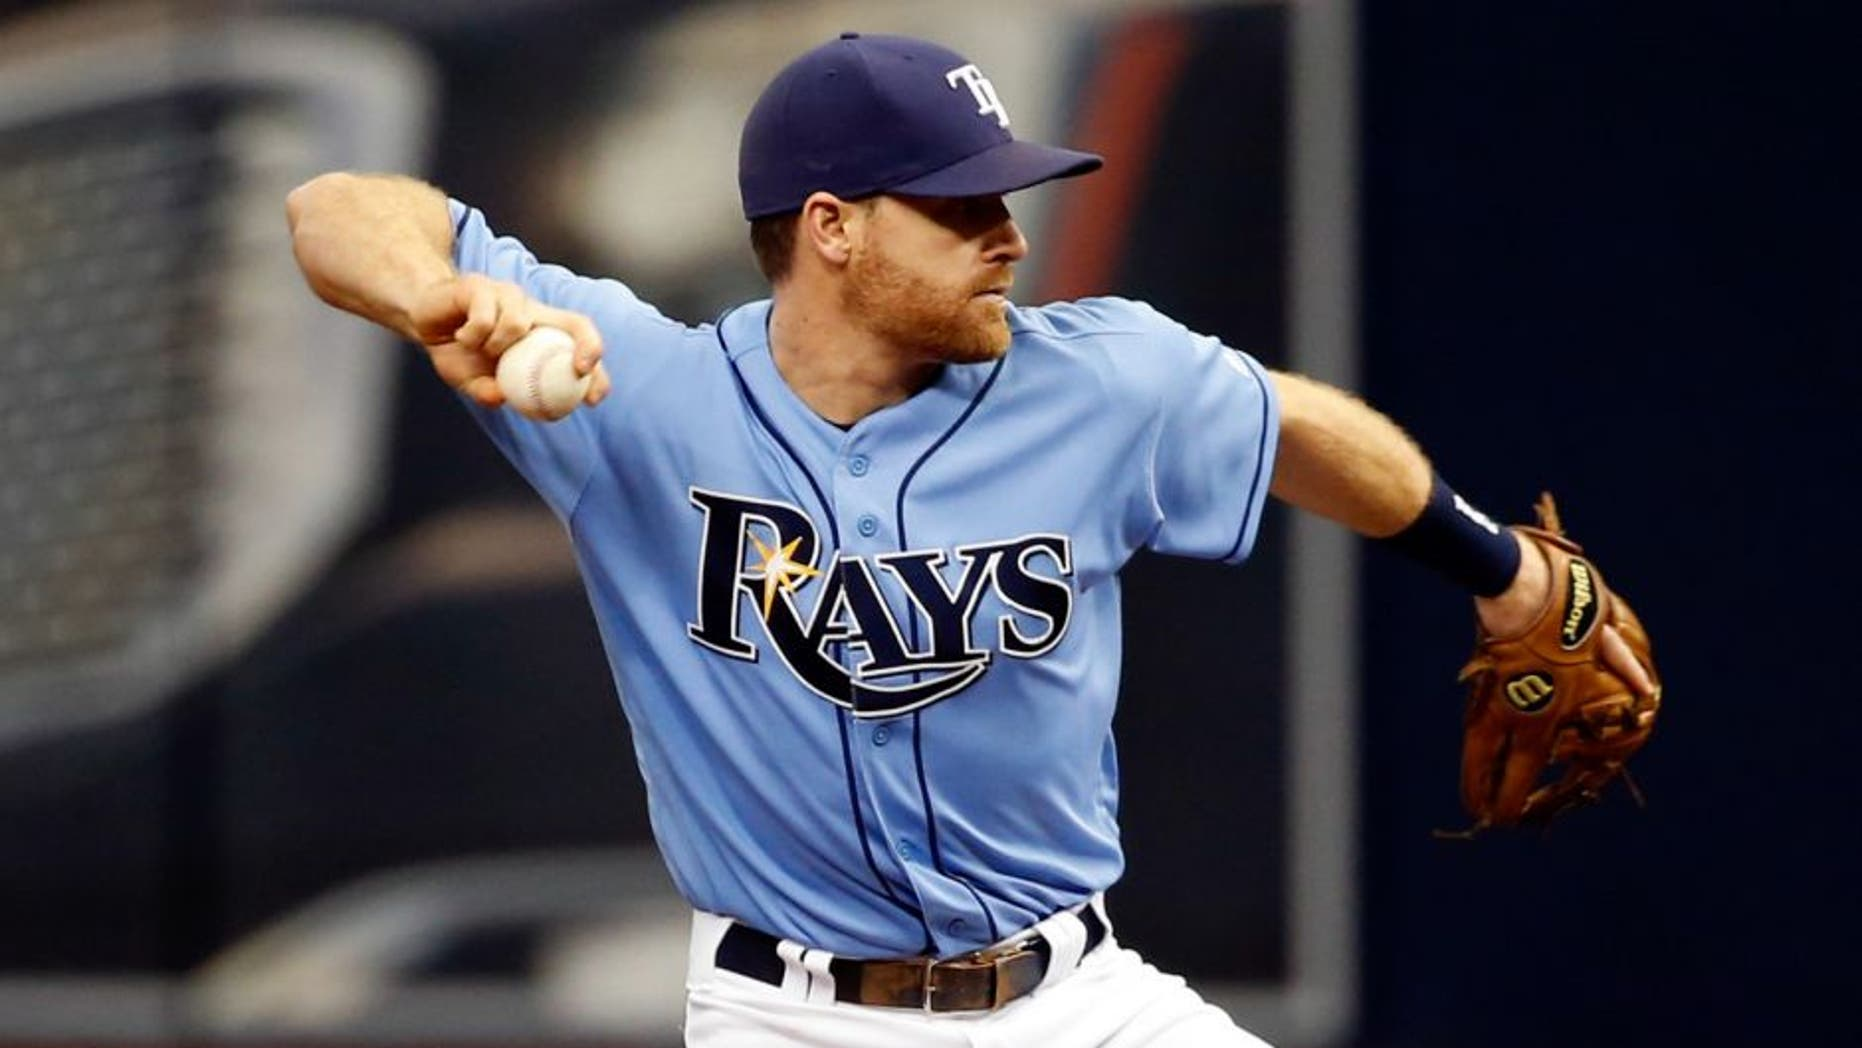 May 1, 2016; St. Petersburg, FL, USA; Tampa Bay Rays second baseman Logan Forsythe (11) throws the ball to first base for a double play against the Toronto Blue Jays at Tropicana Field. Mandatory Credit: Kim Klement-USA TODAY Sports